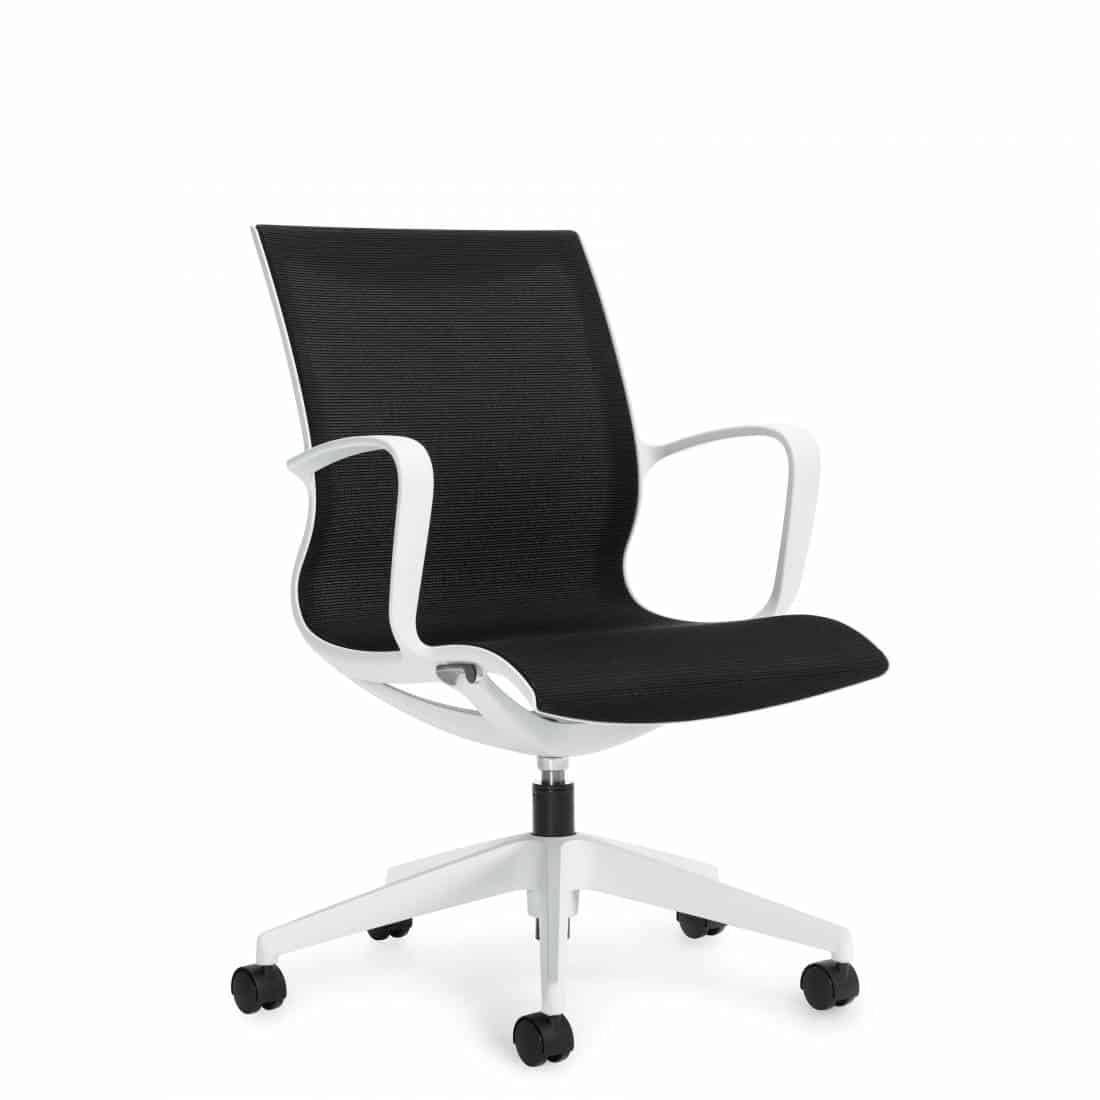 swivel lounge chairs kohls rocking chair cushions global solar mesh back and seat conference room chair- joyce contract